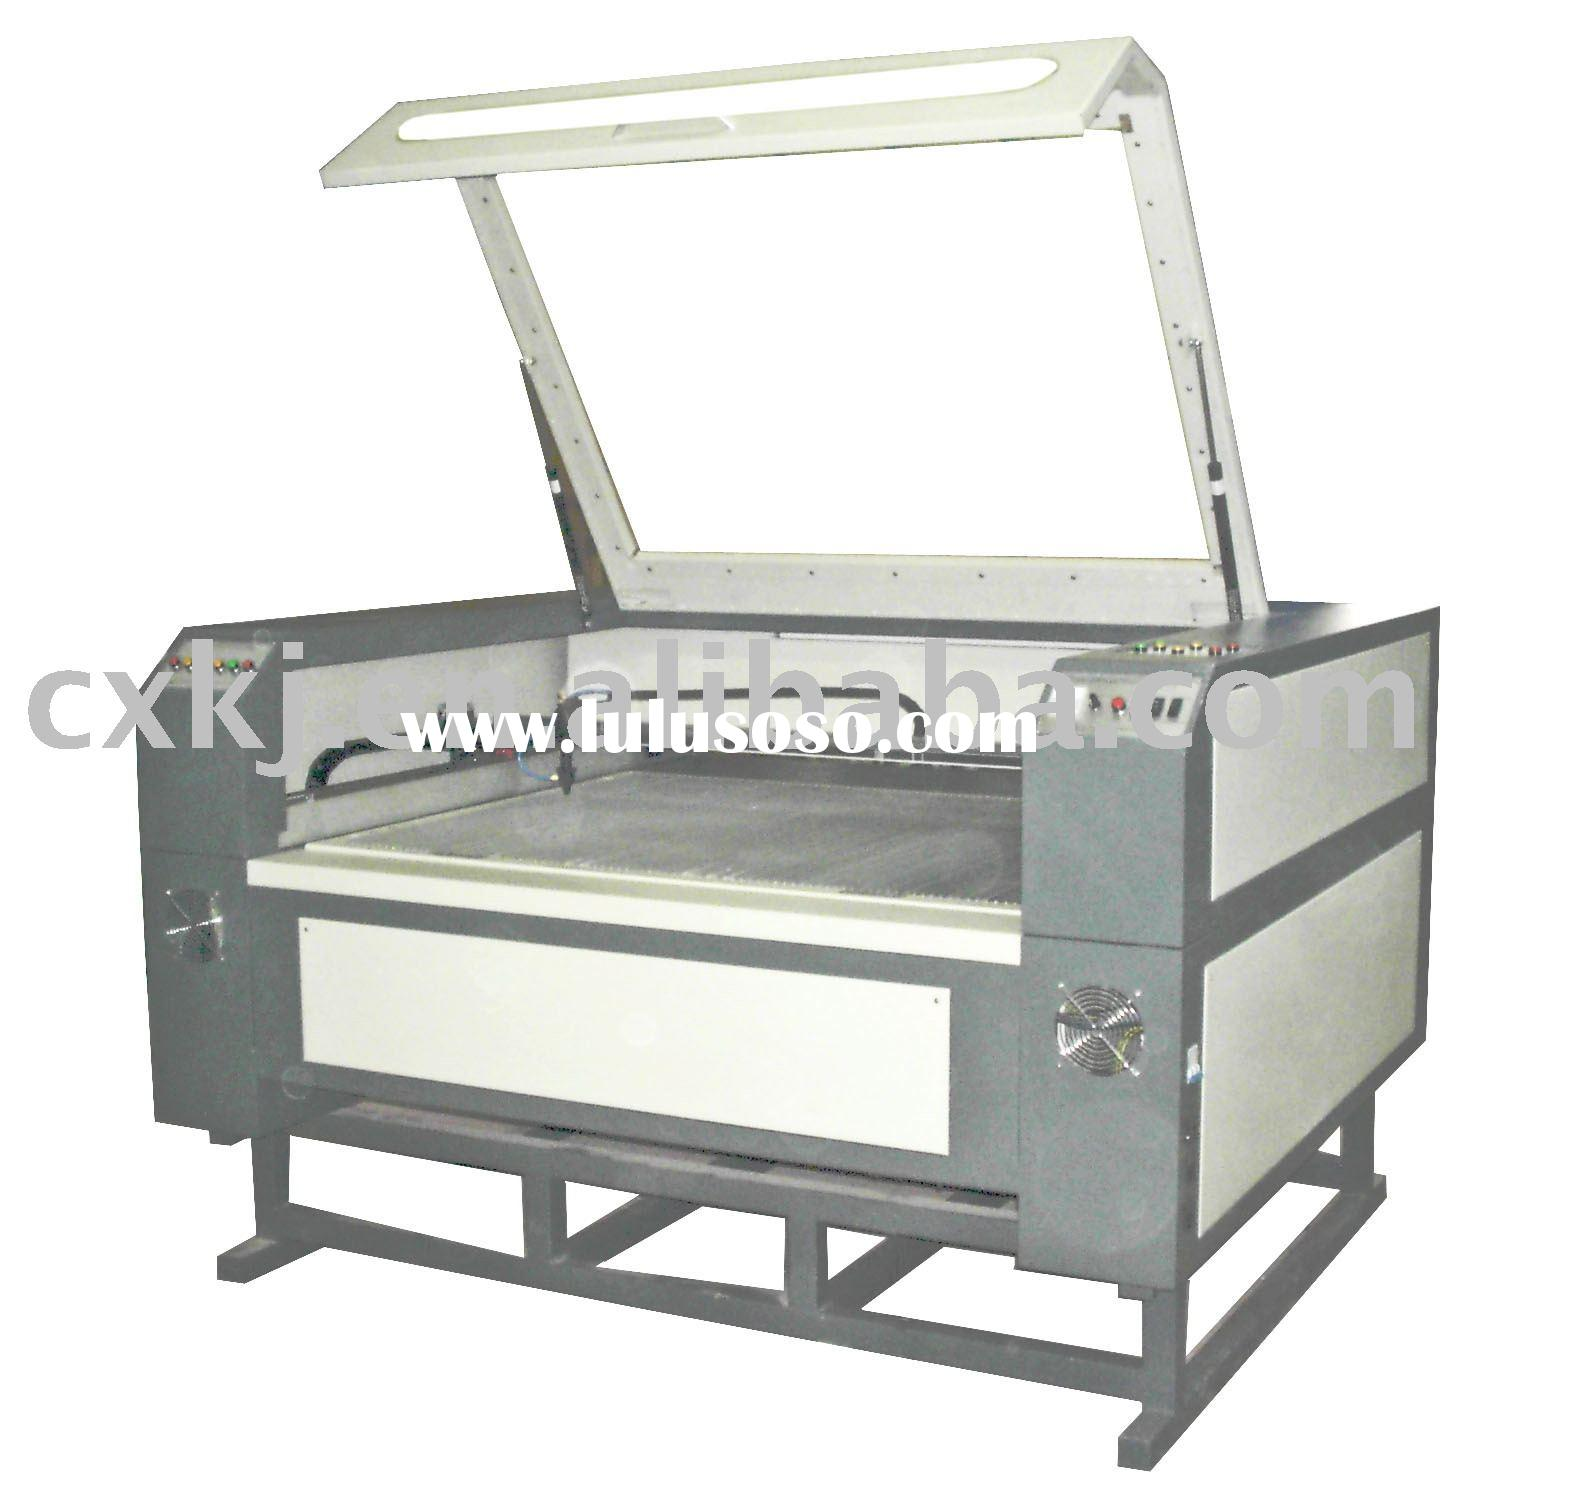 Tombstone Laser Engraving Machine/Tombstone Engraving Machine/Tombstone Laser Engraver.